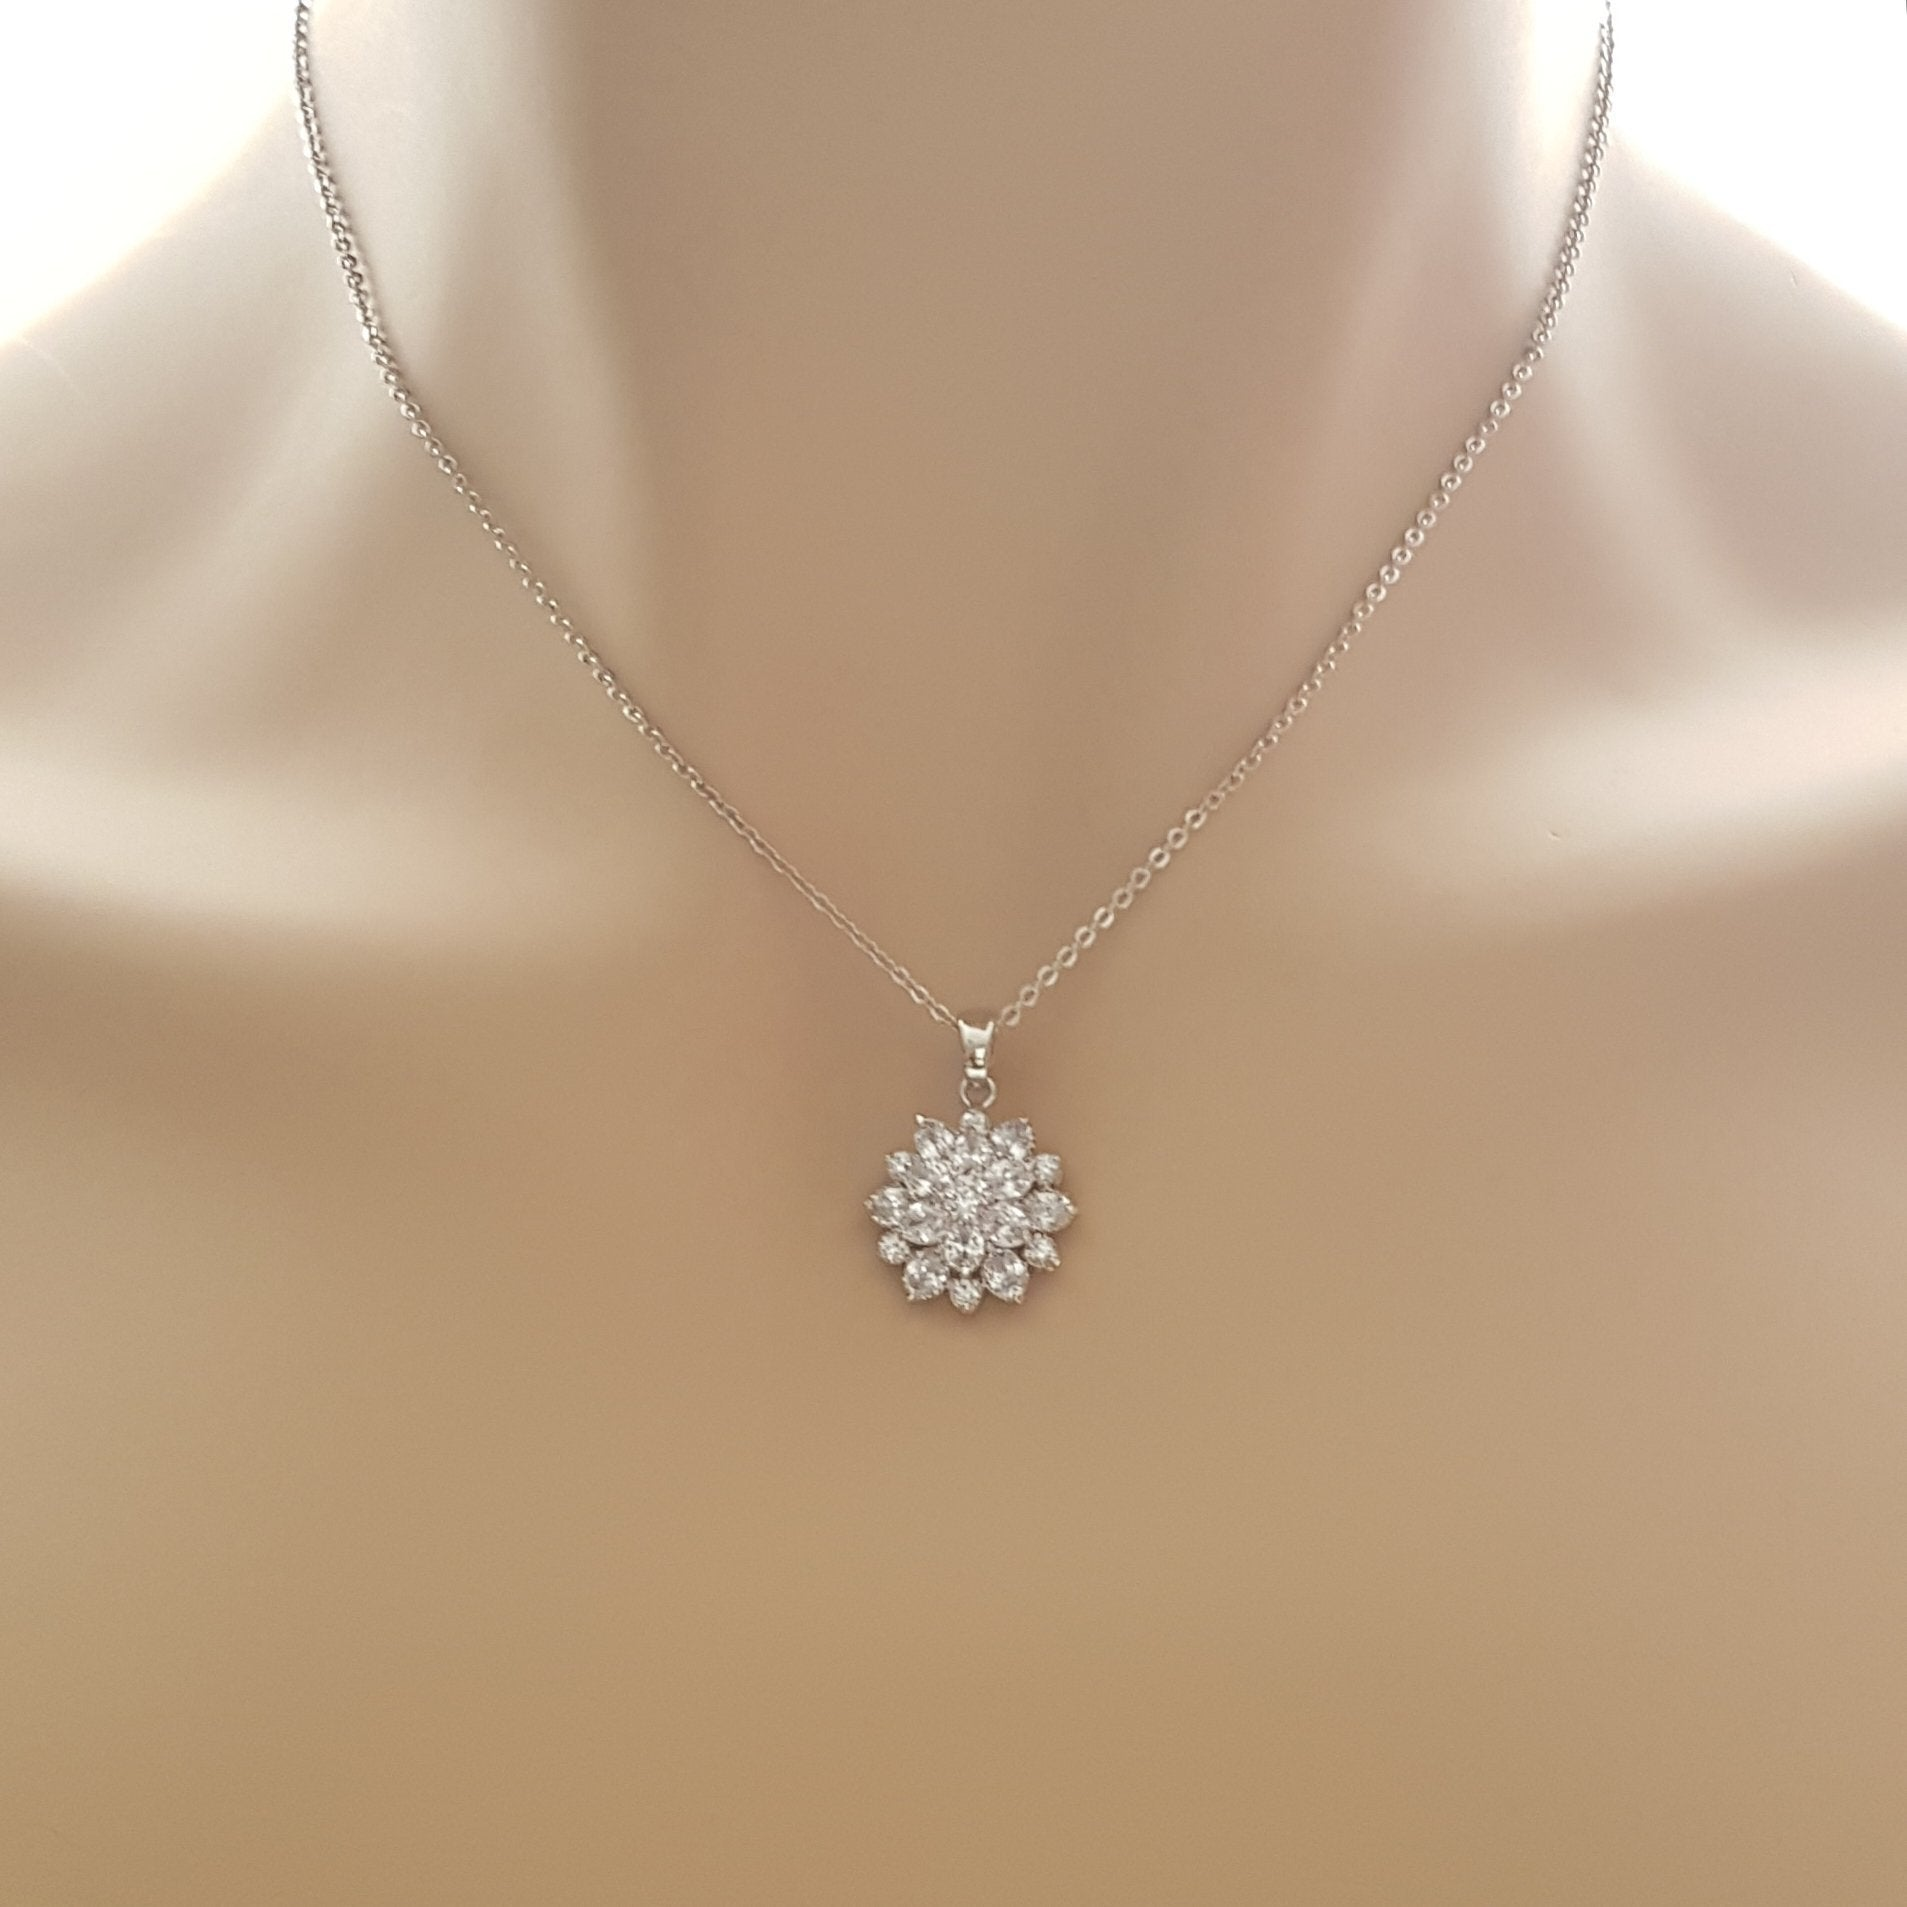 Flower Pendant Necklace in Silver-Floret - PoetryDesigns